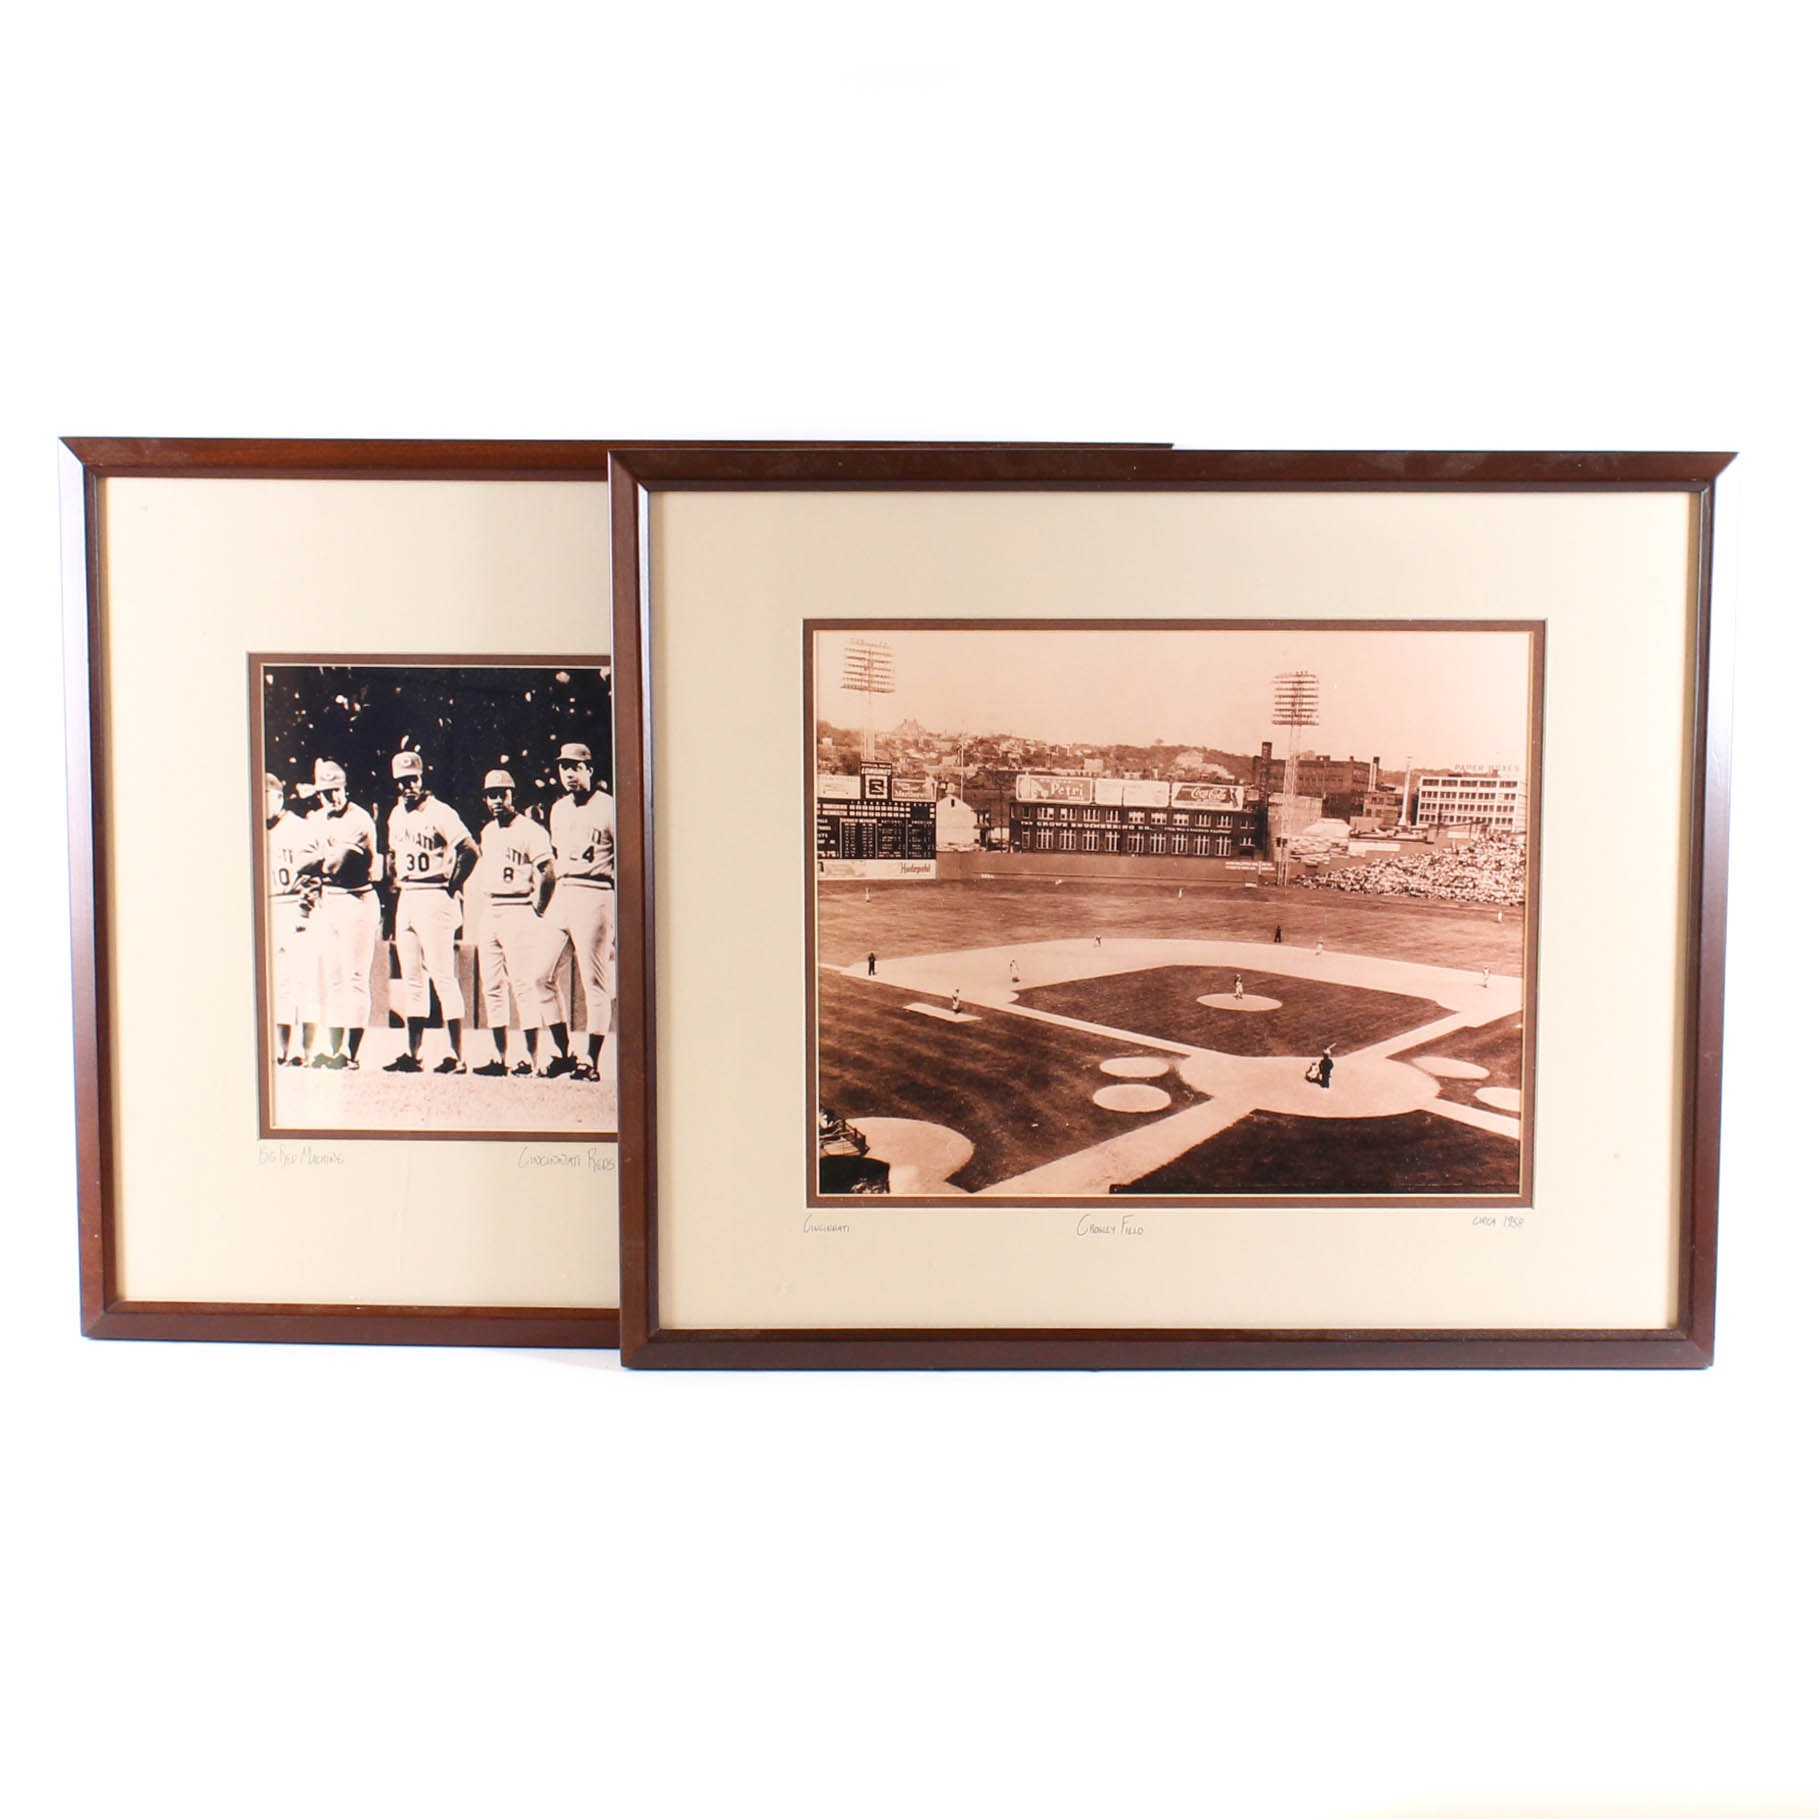 Vintage Circa 1950s and 1970s Cincinnati Reds Photographic Print Pairing